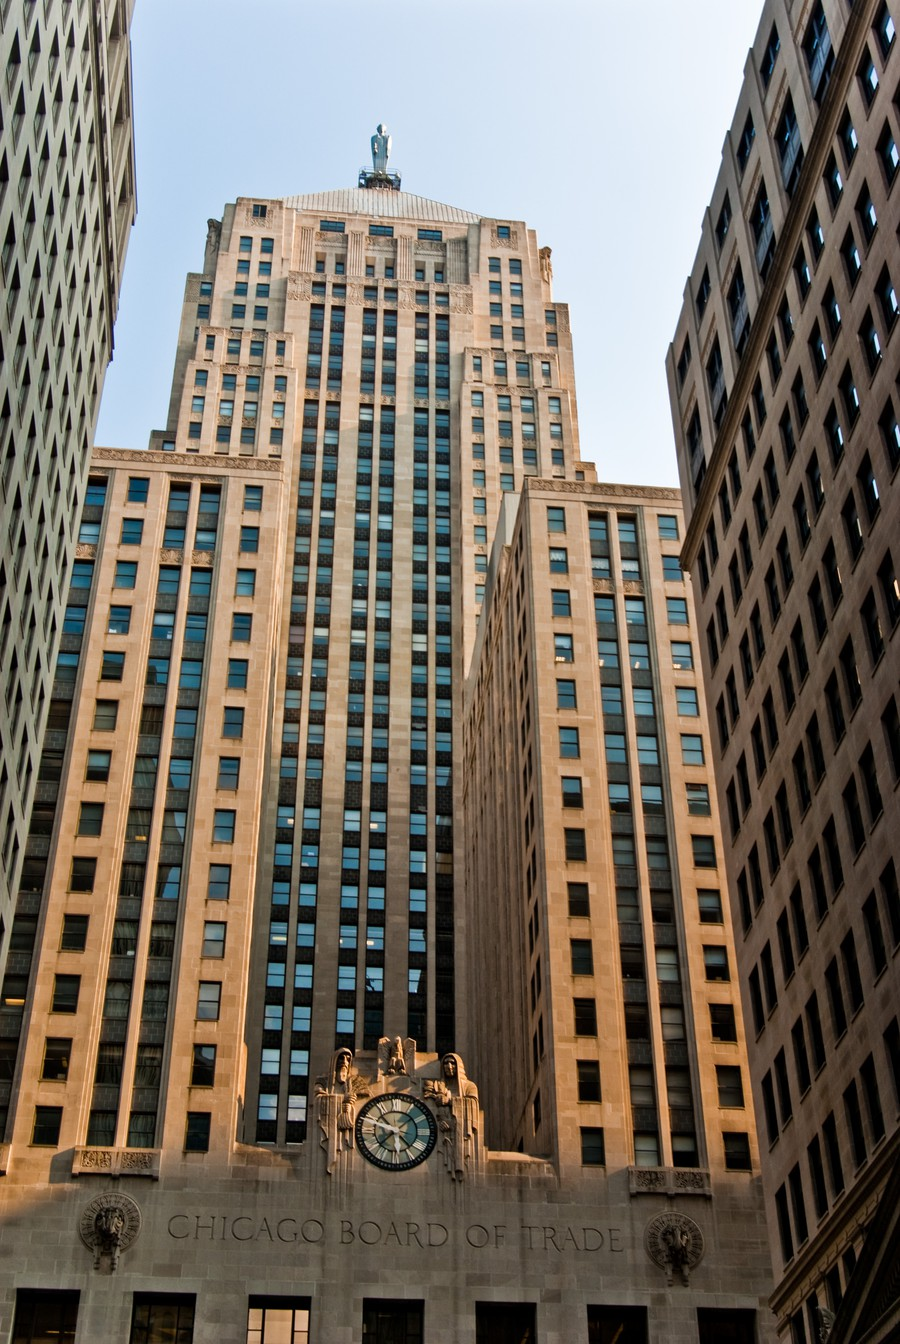 Chicago Open House visitors waited in line to enter the Art Deco vaults at the Chicago Board of Trade building.